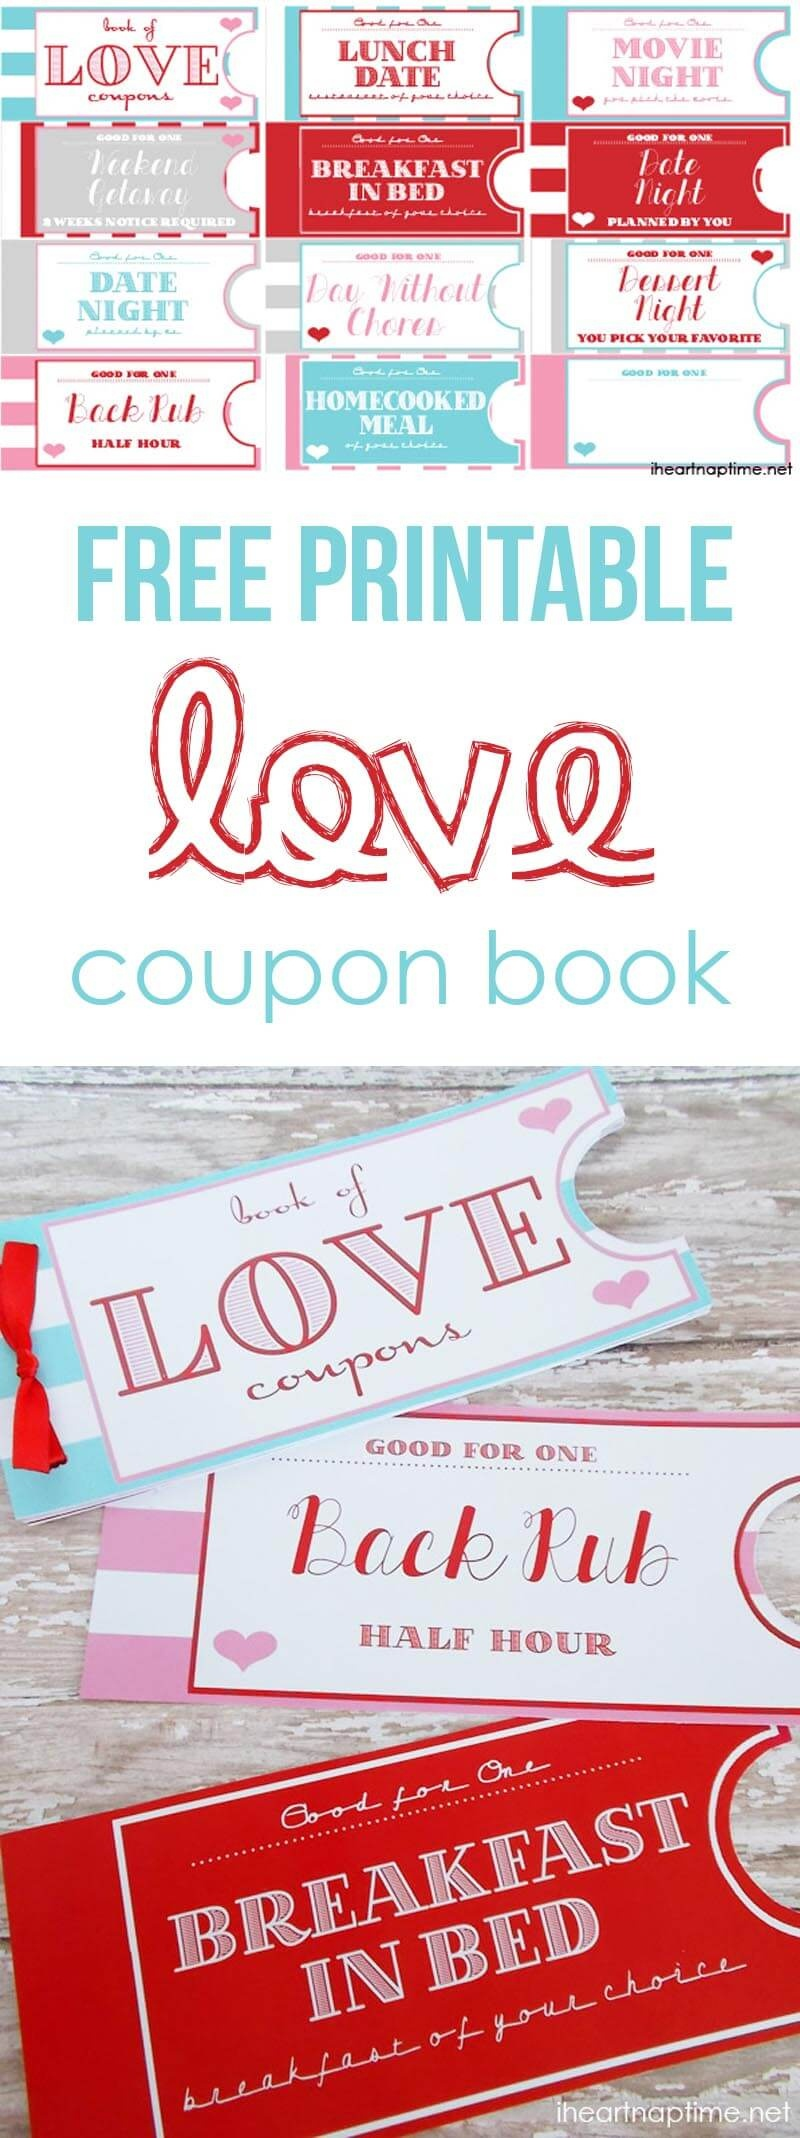 Printable Love Coupon Book -The Perfect Valentine's Day Gift! - Free Printable Love Coupons